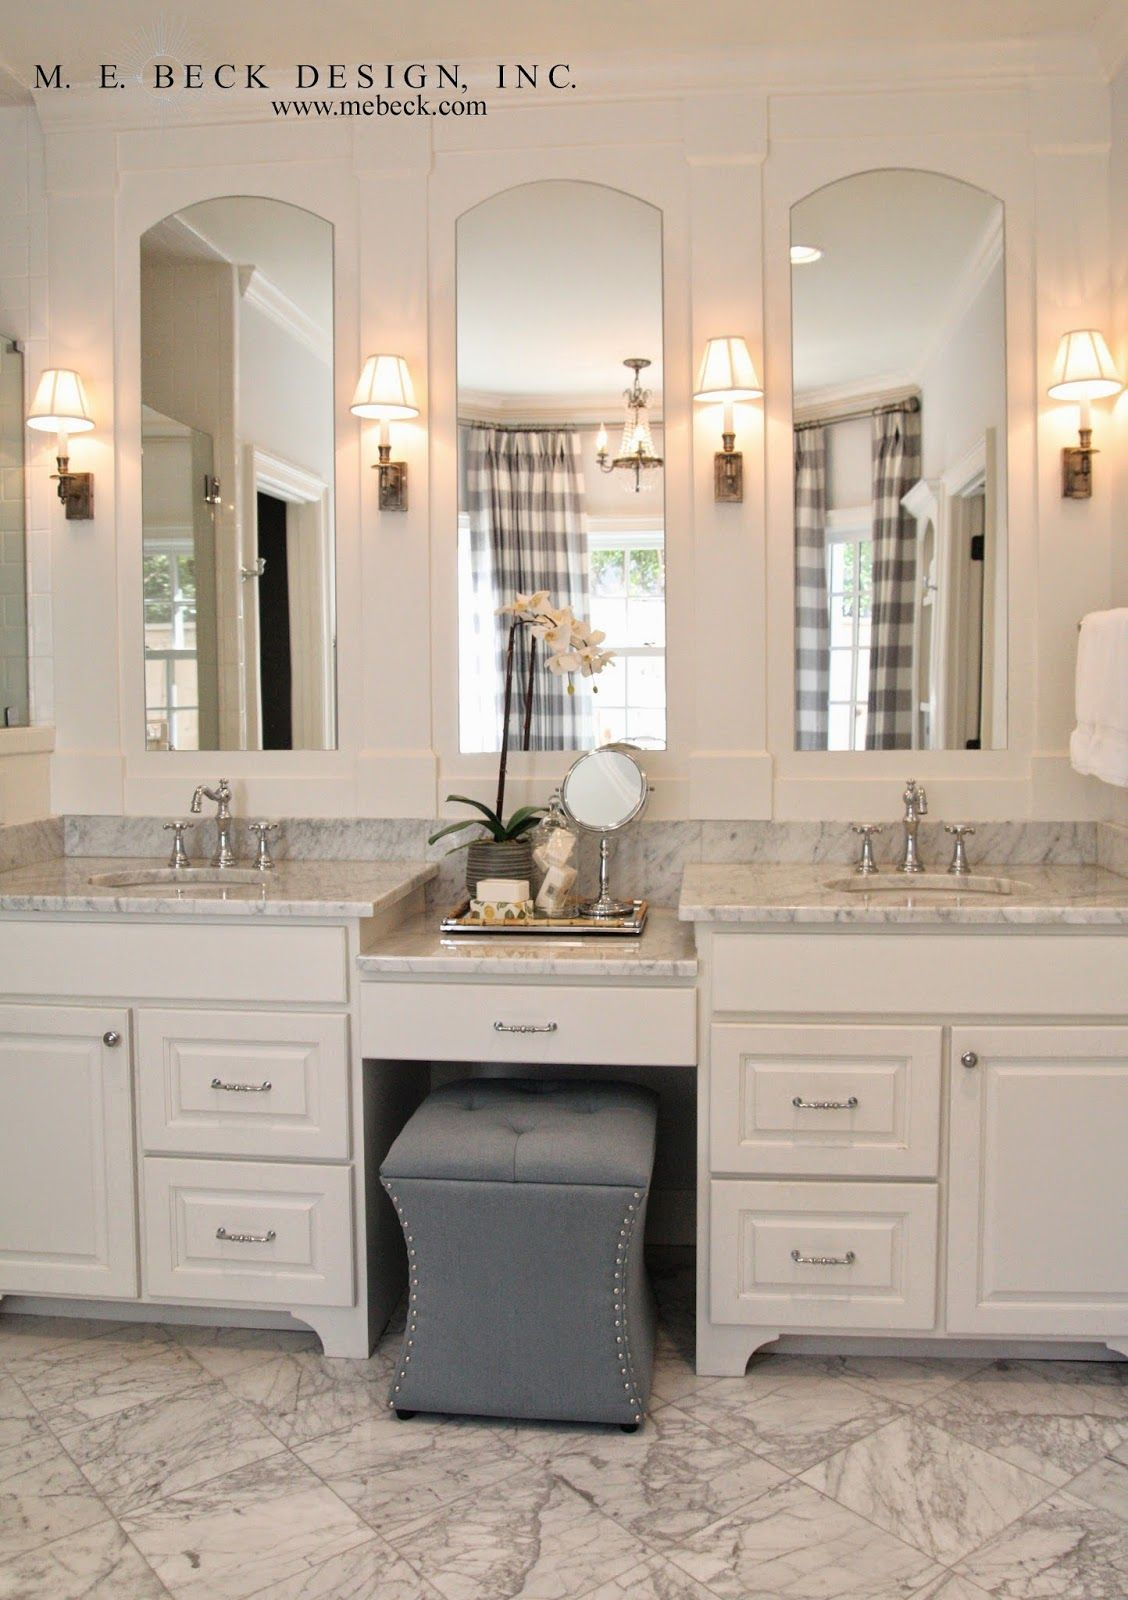 No Matter The Number Of Bathrooms In Your House The Master Suite Deserves The Grandest A Bathroom Remodel Master Small Master Bathroom Master Bathroom Vanity